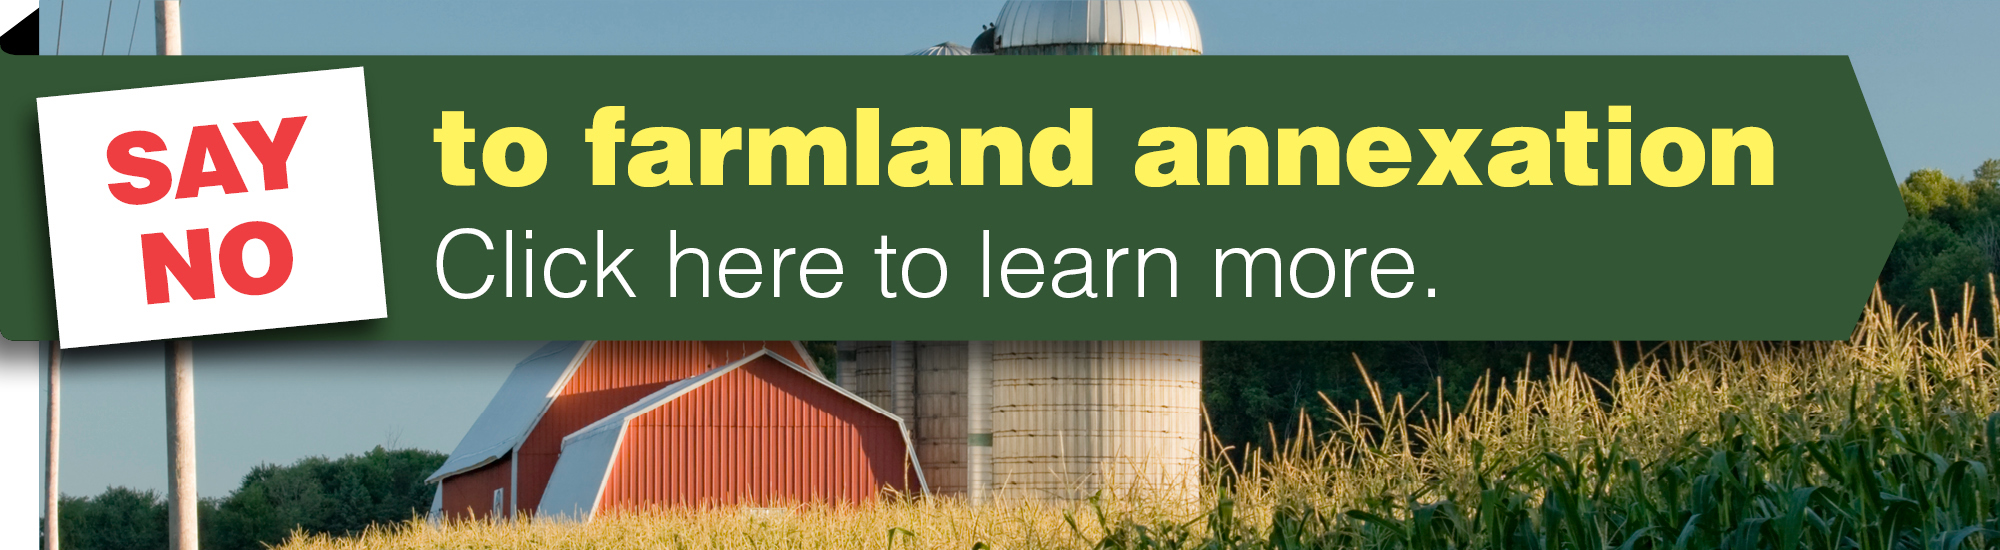 Say NO to Farmland Annexation